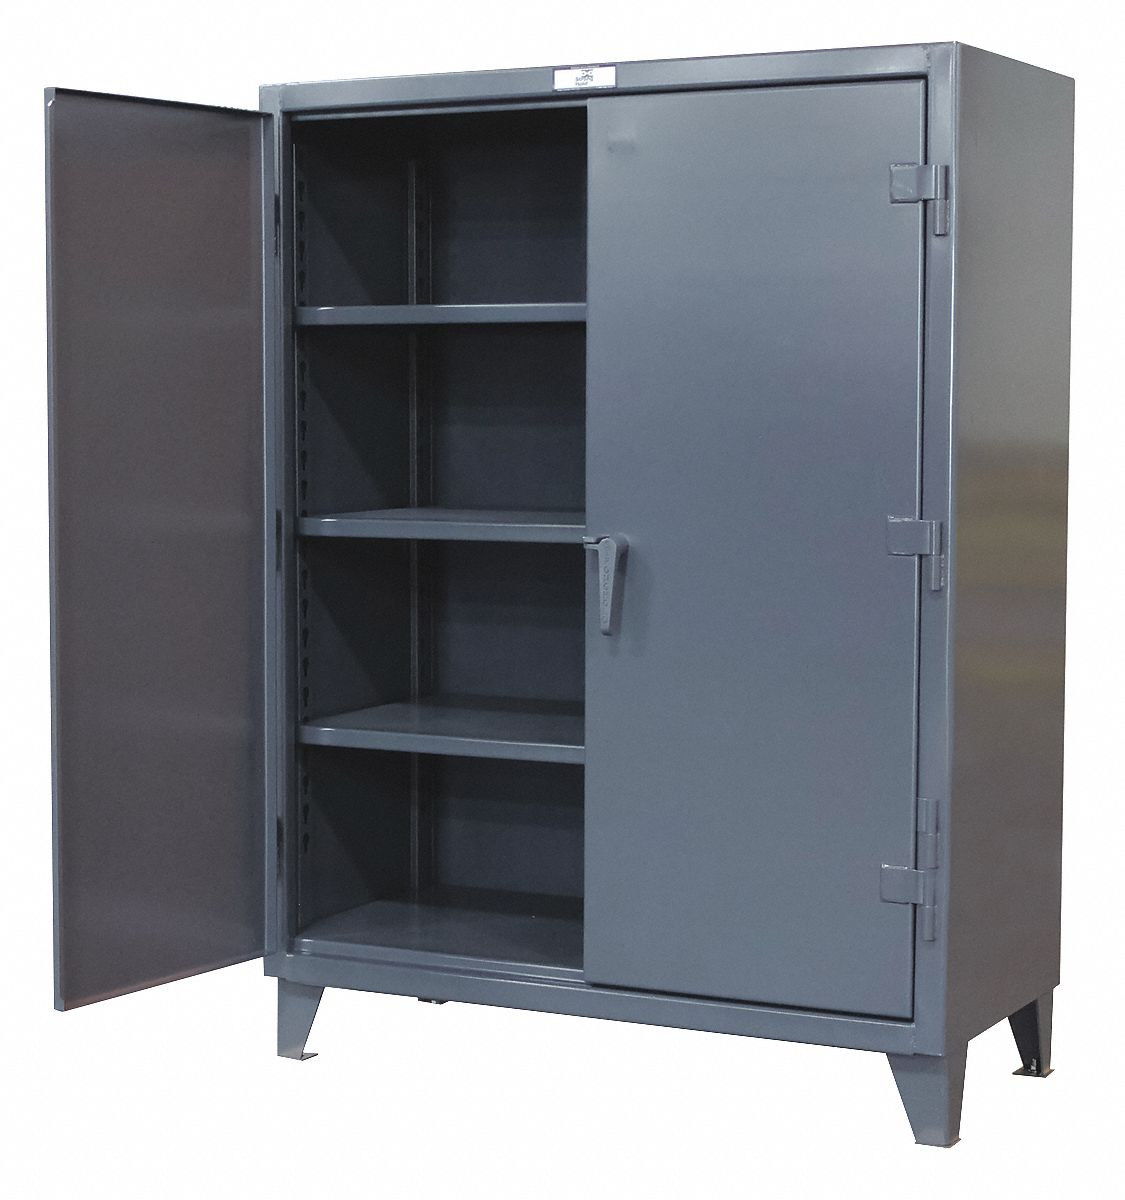 metal cabinet strong hold heavy duty storage cabinet gray 78 quot h x 23225